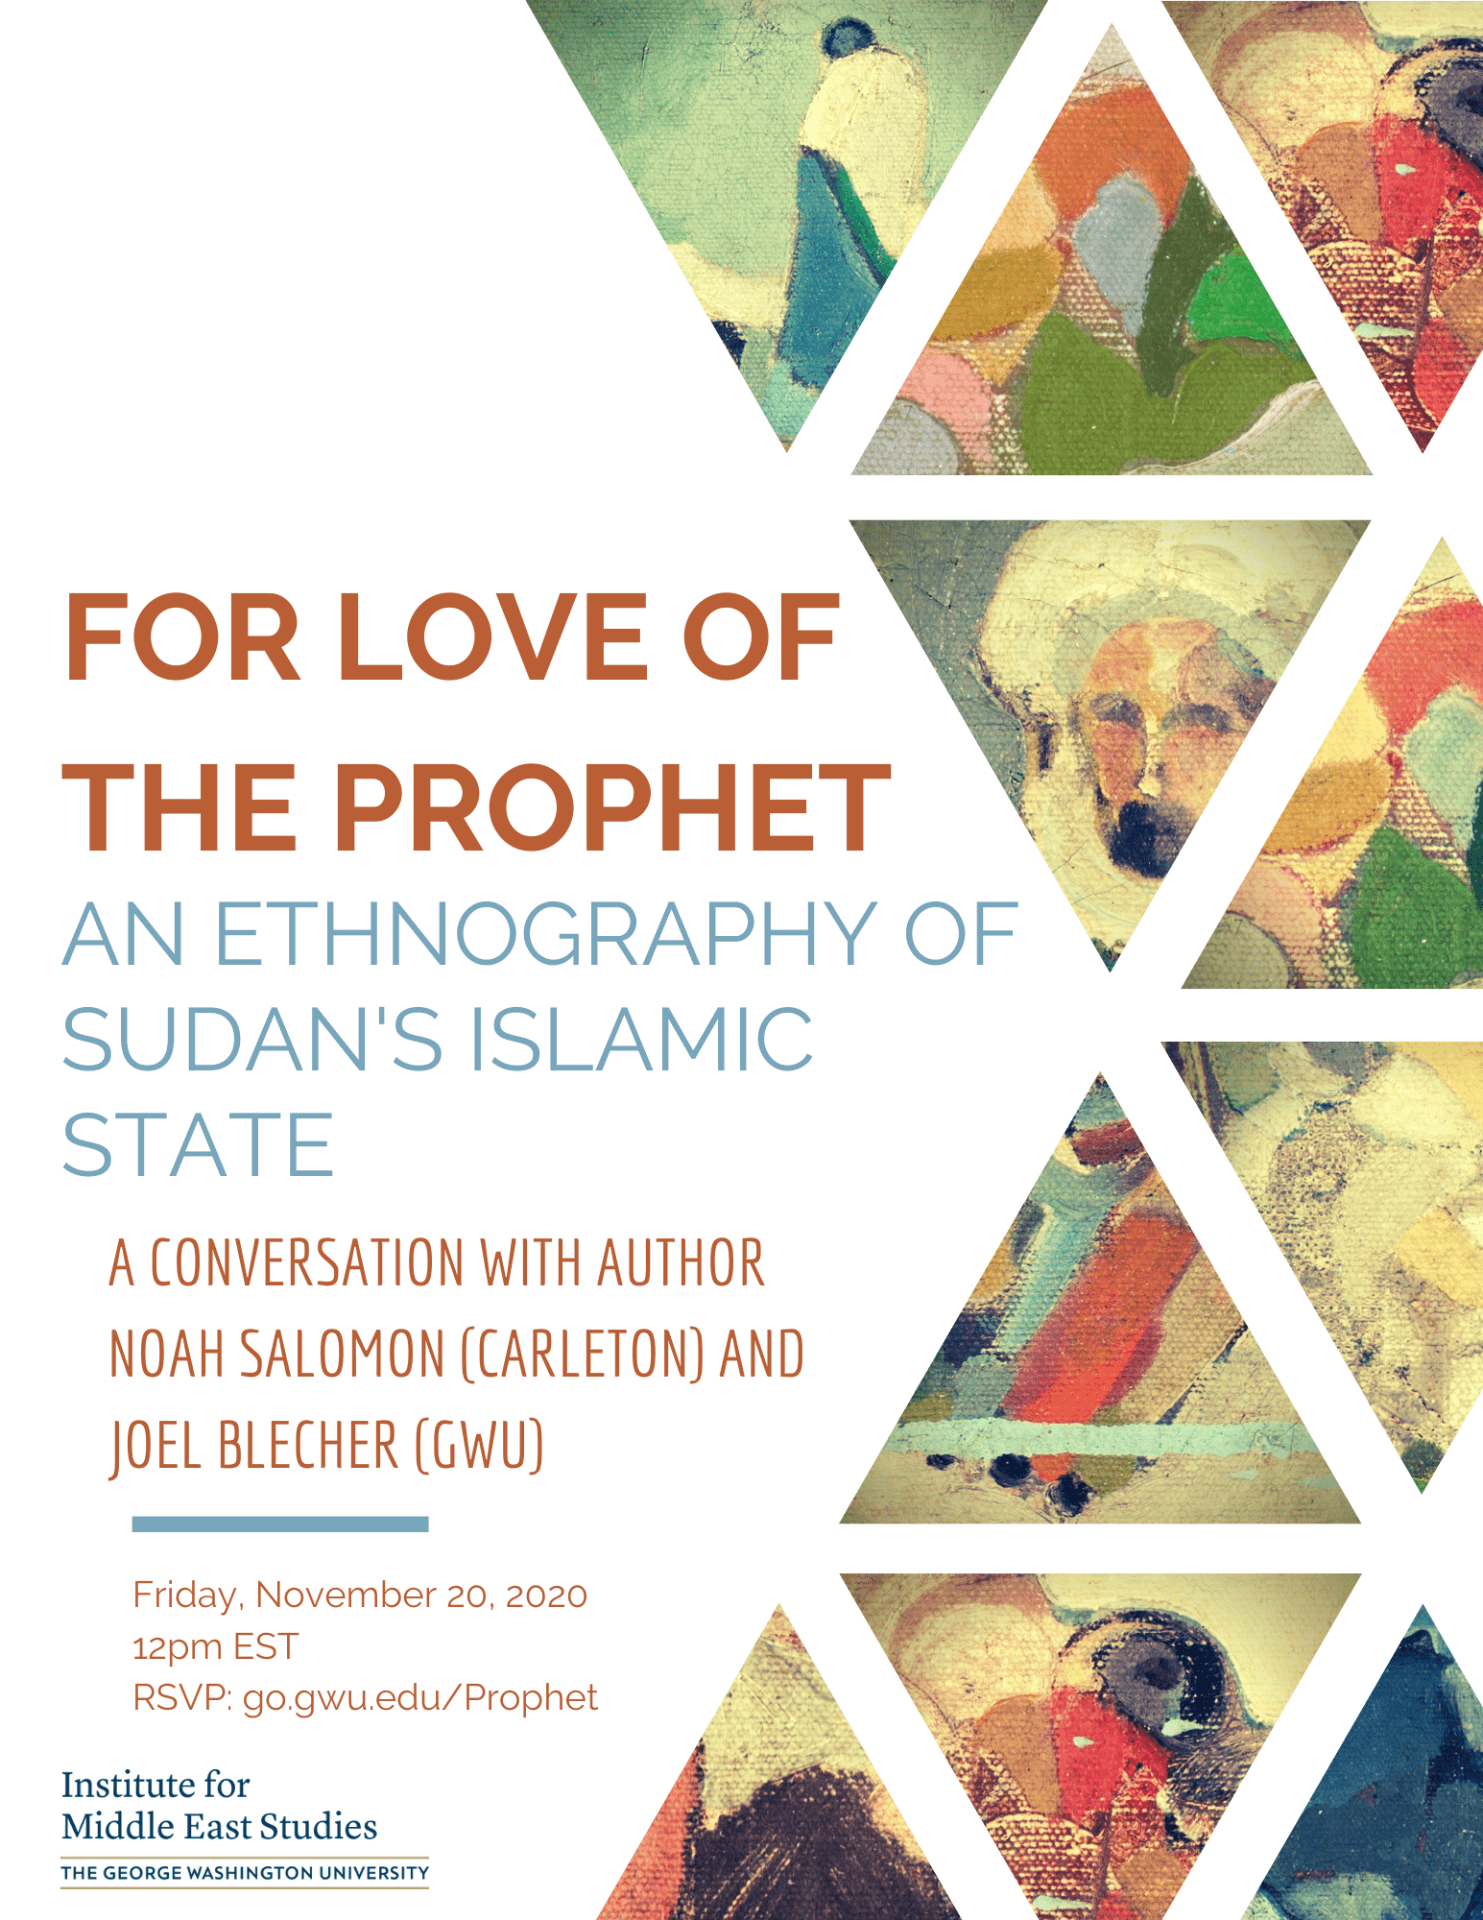 for the love of prophet event flier